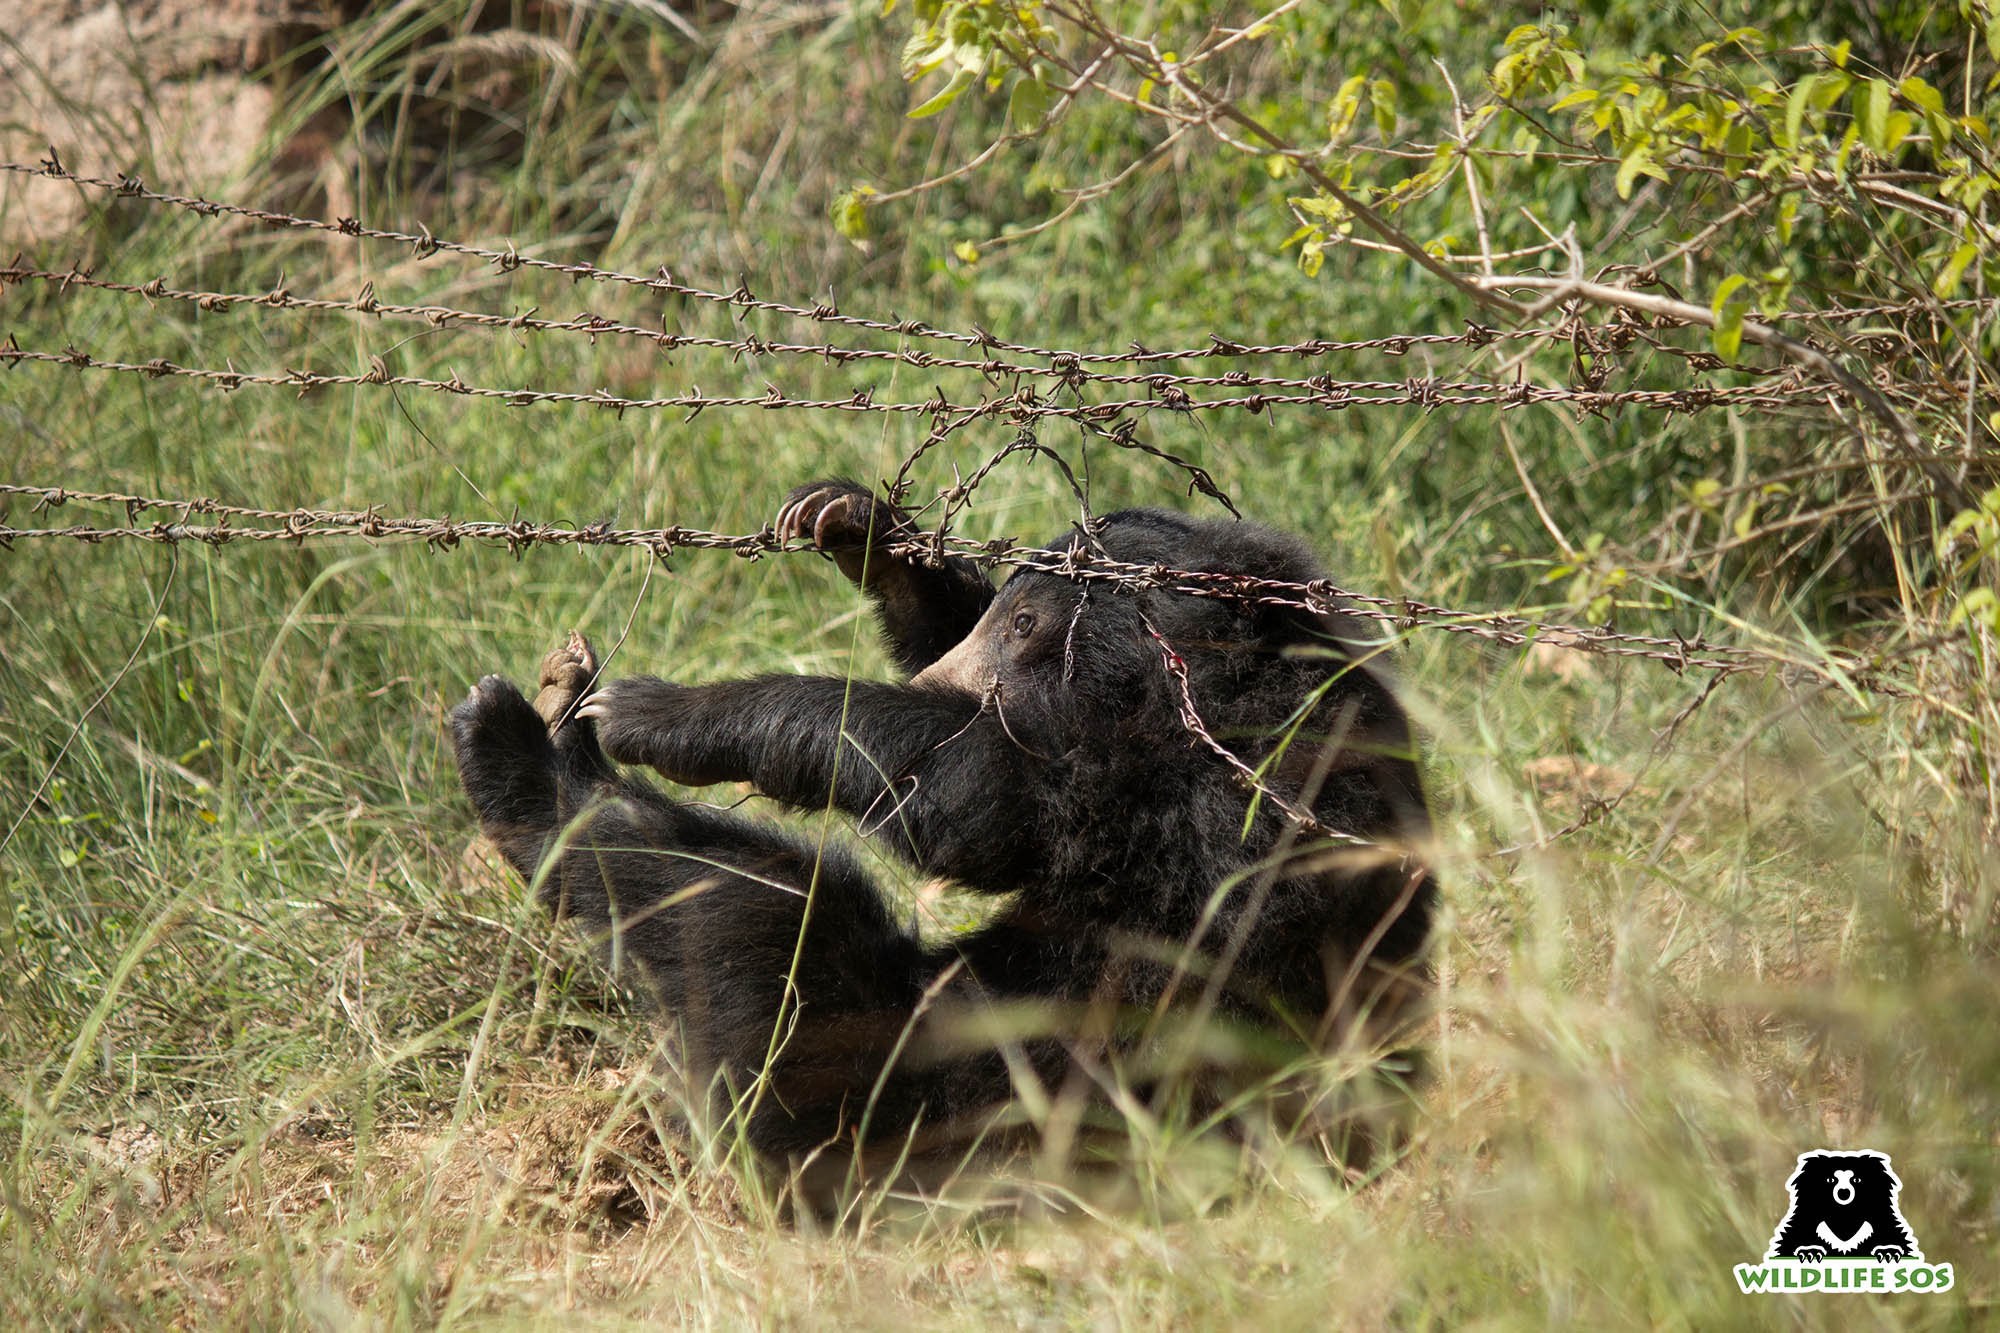 A bear's leg was caught in a deadly poacher's snare and found trapped in a barbed wire fence